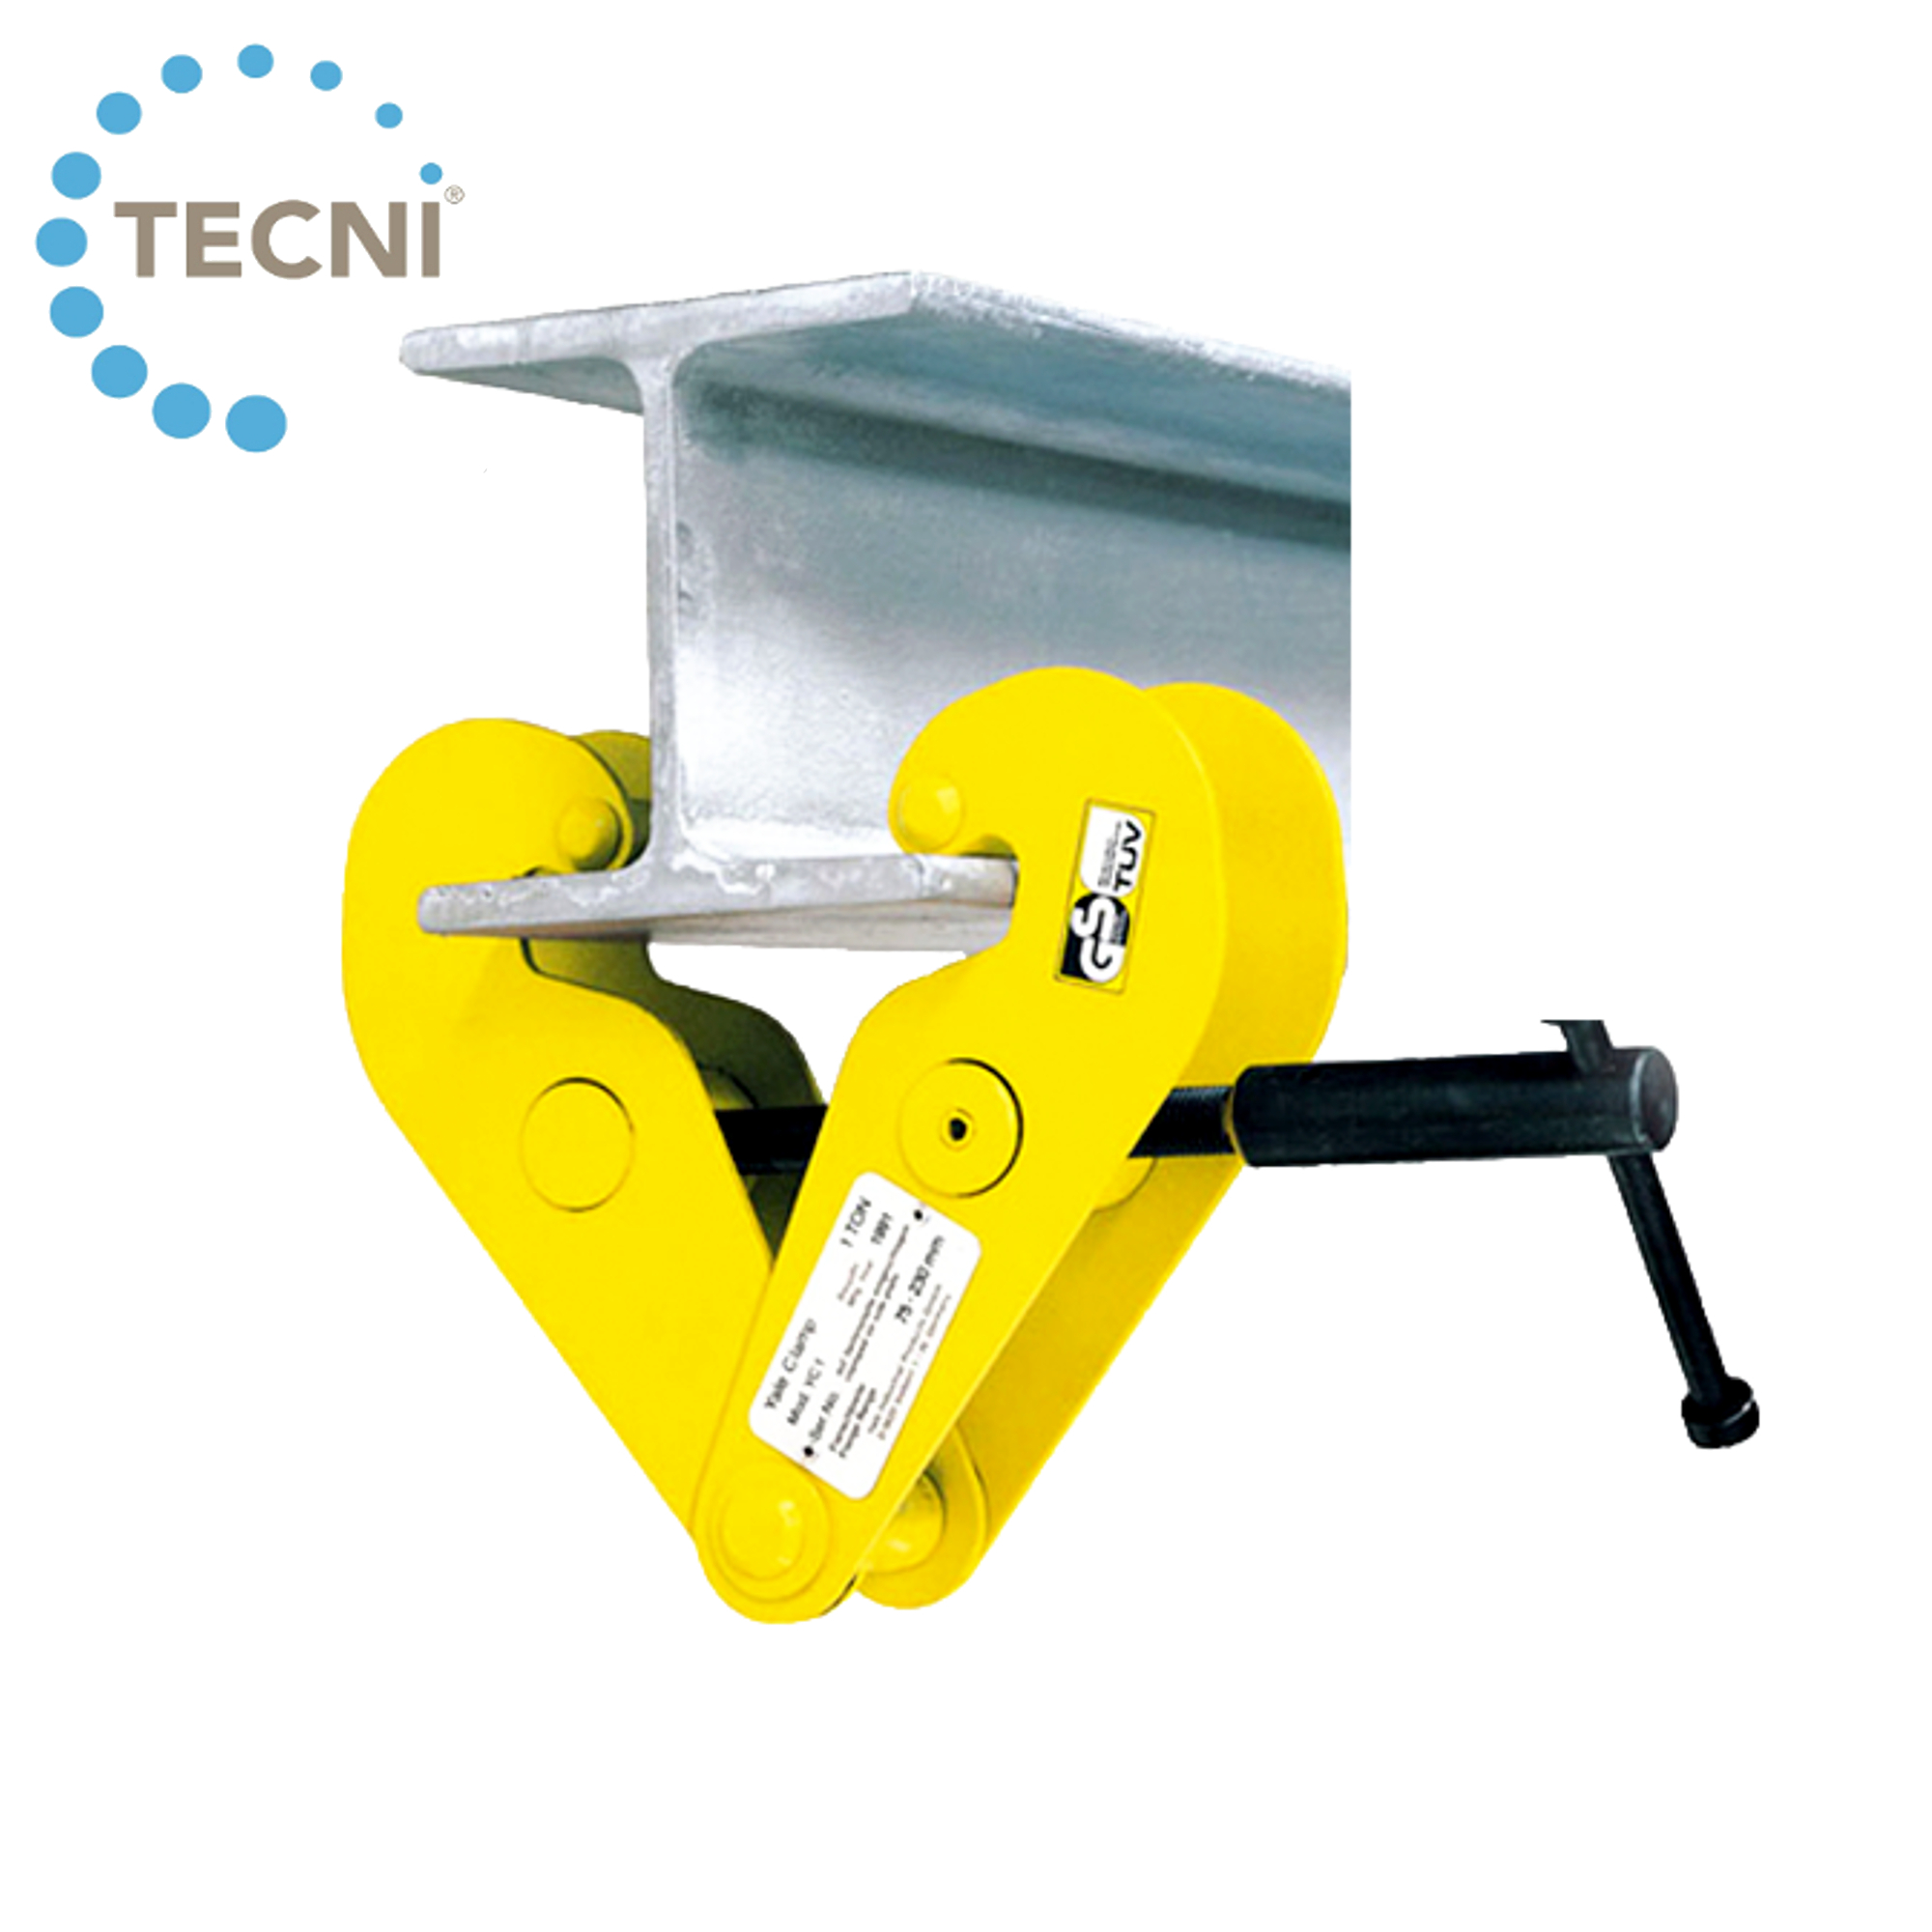 Yale YC-5 Beam Clamp from TECNI uk